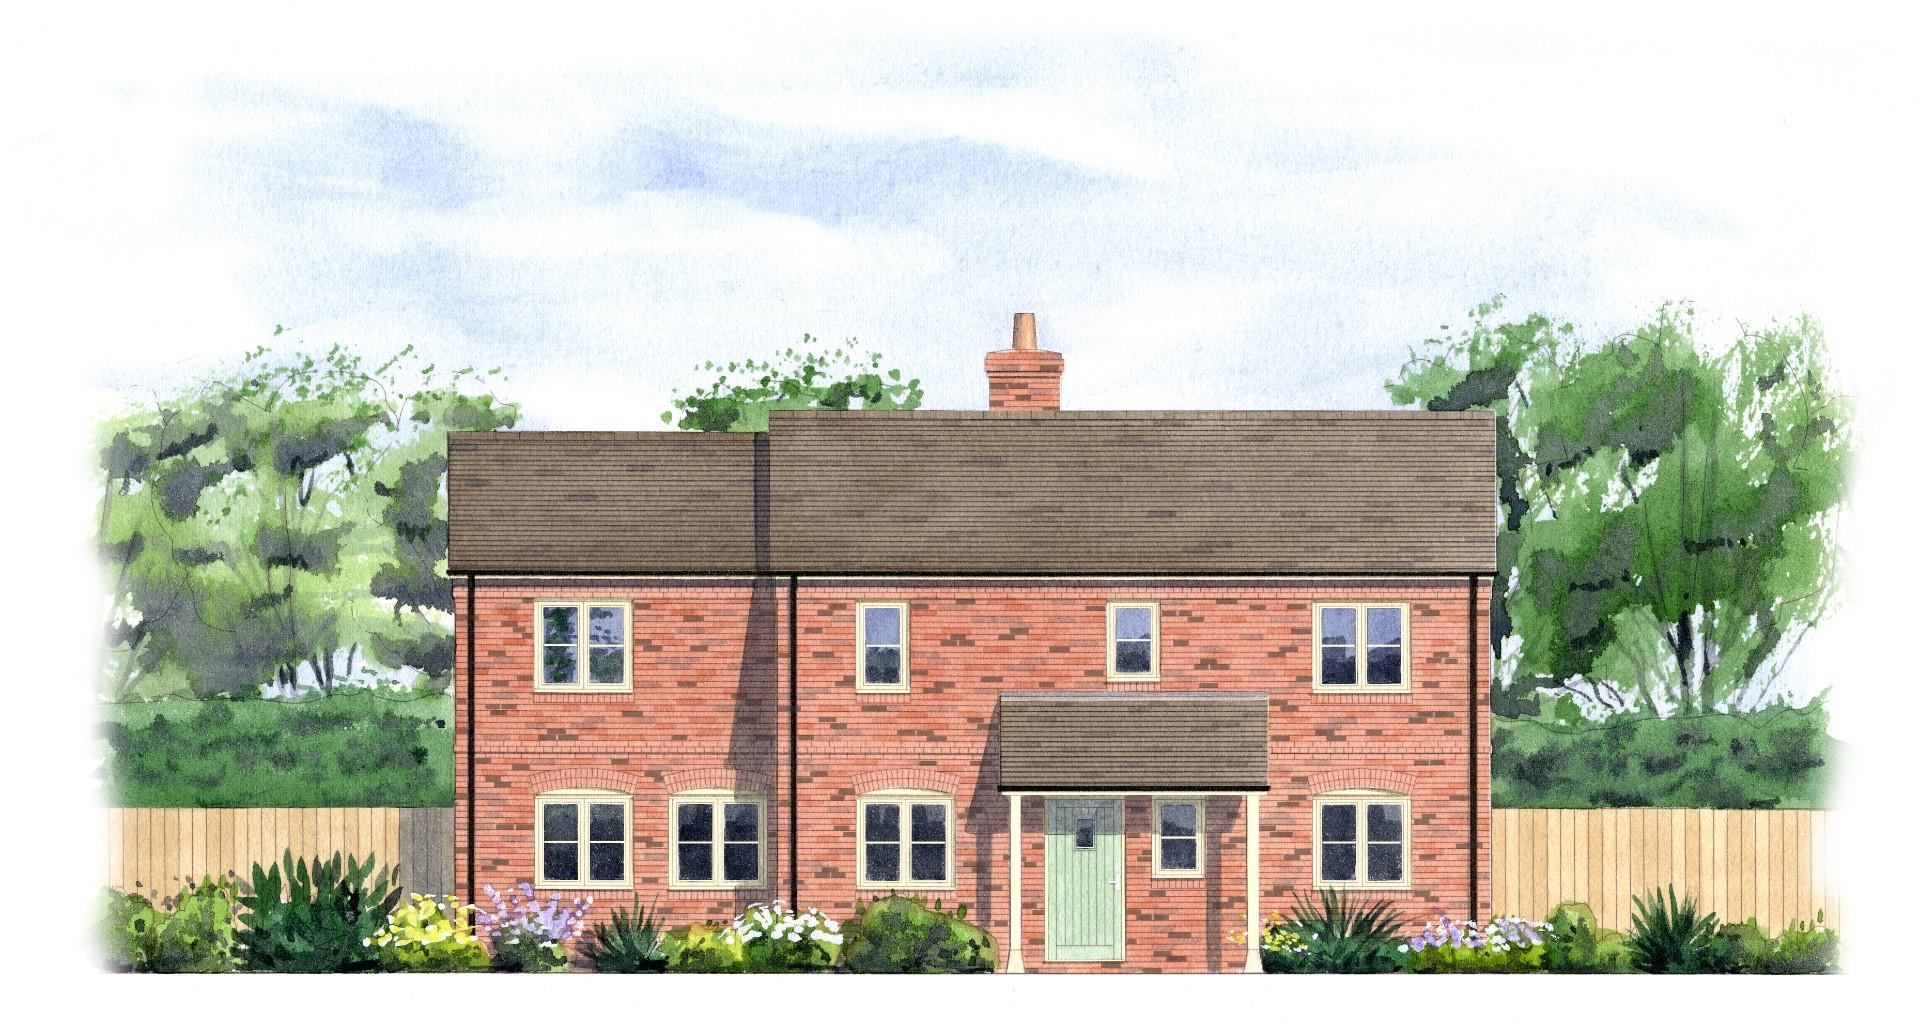 (Plot 6) 1 Peachley Court Close, Peachley Lane, Lower Broadheath, Worcestershire, WR2 6SA